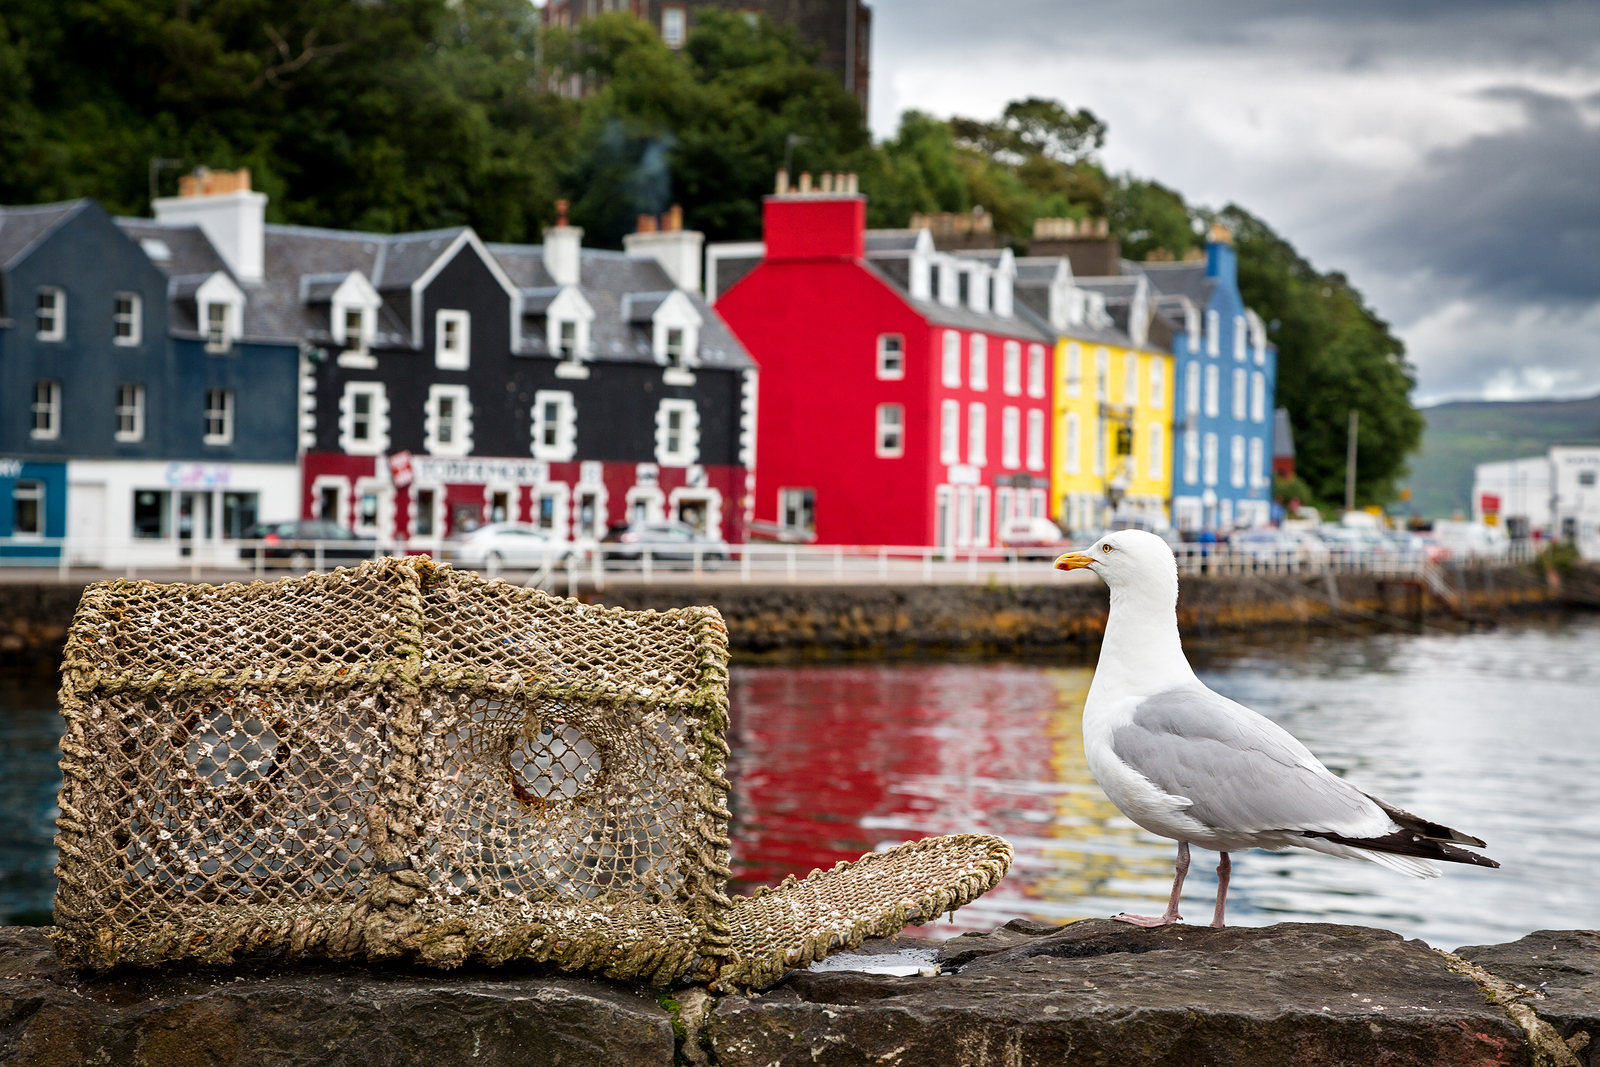 Explore Tobermory on the Isle of Mull on your private tour of Scotland